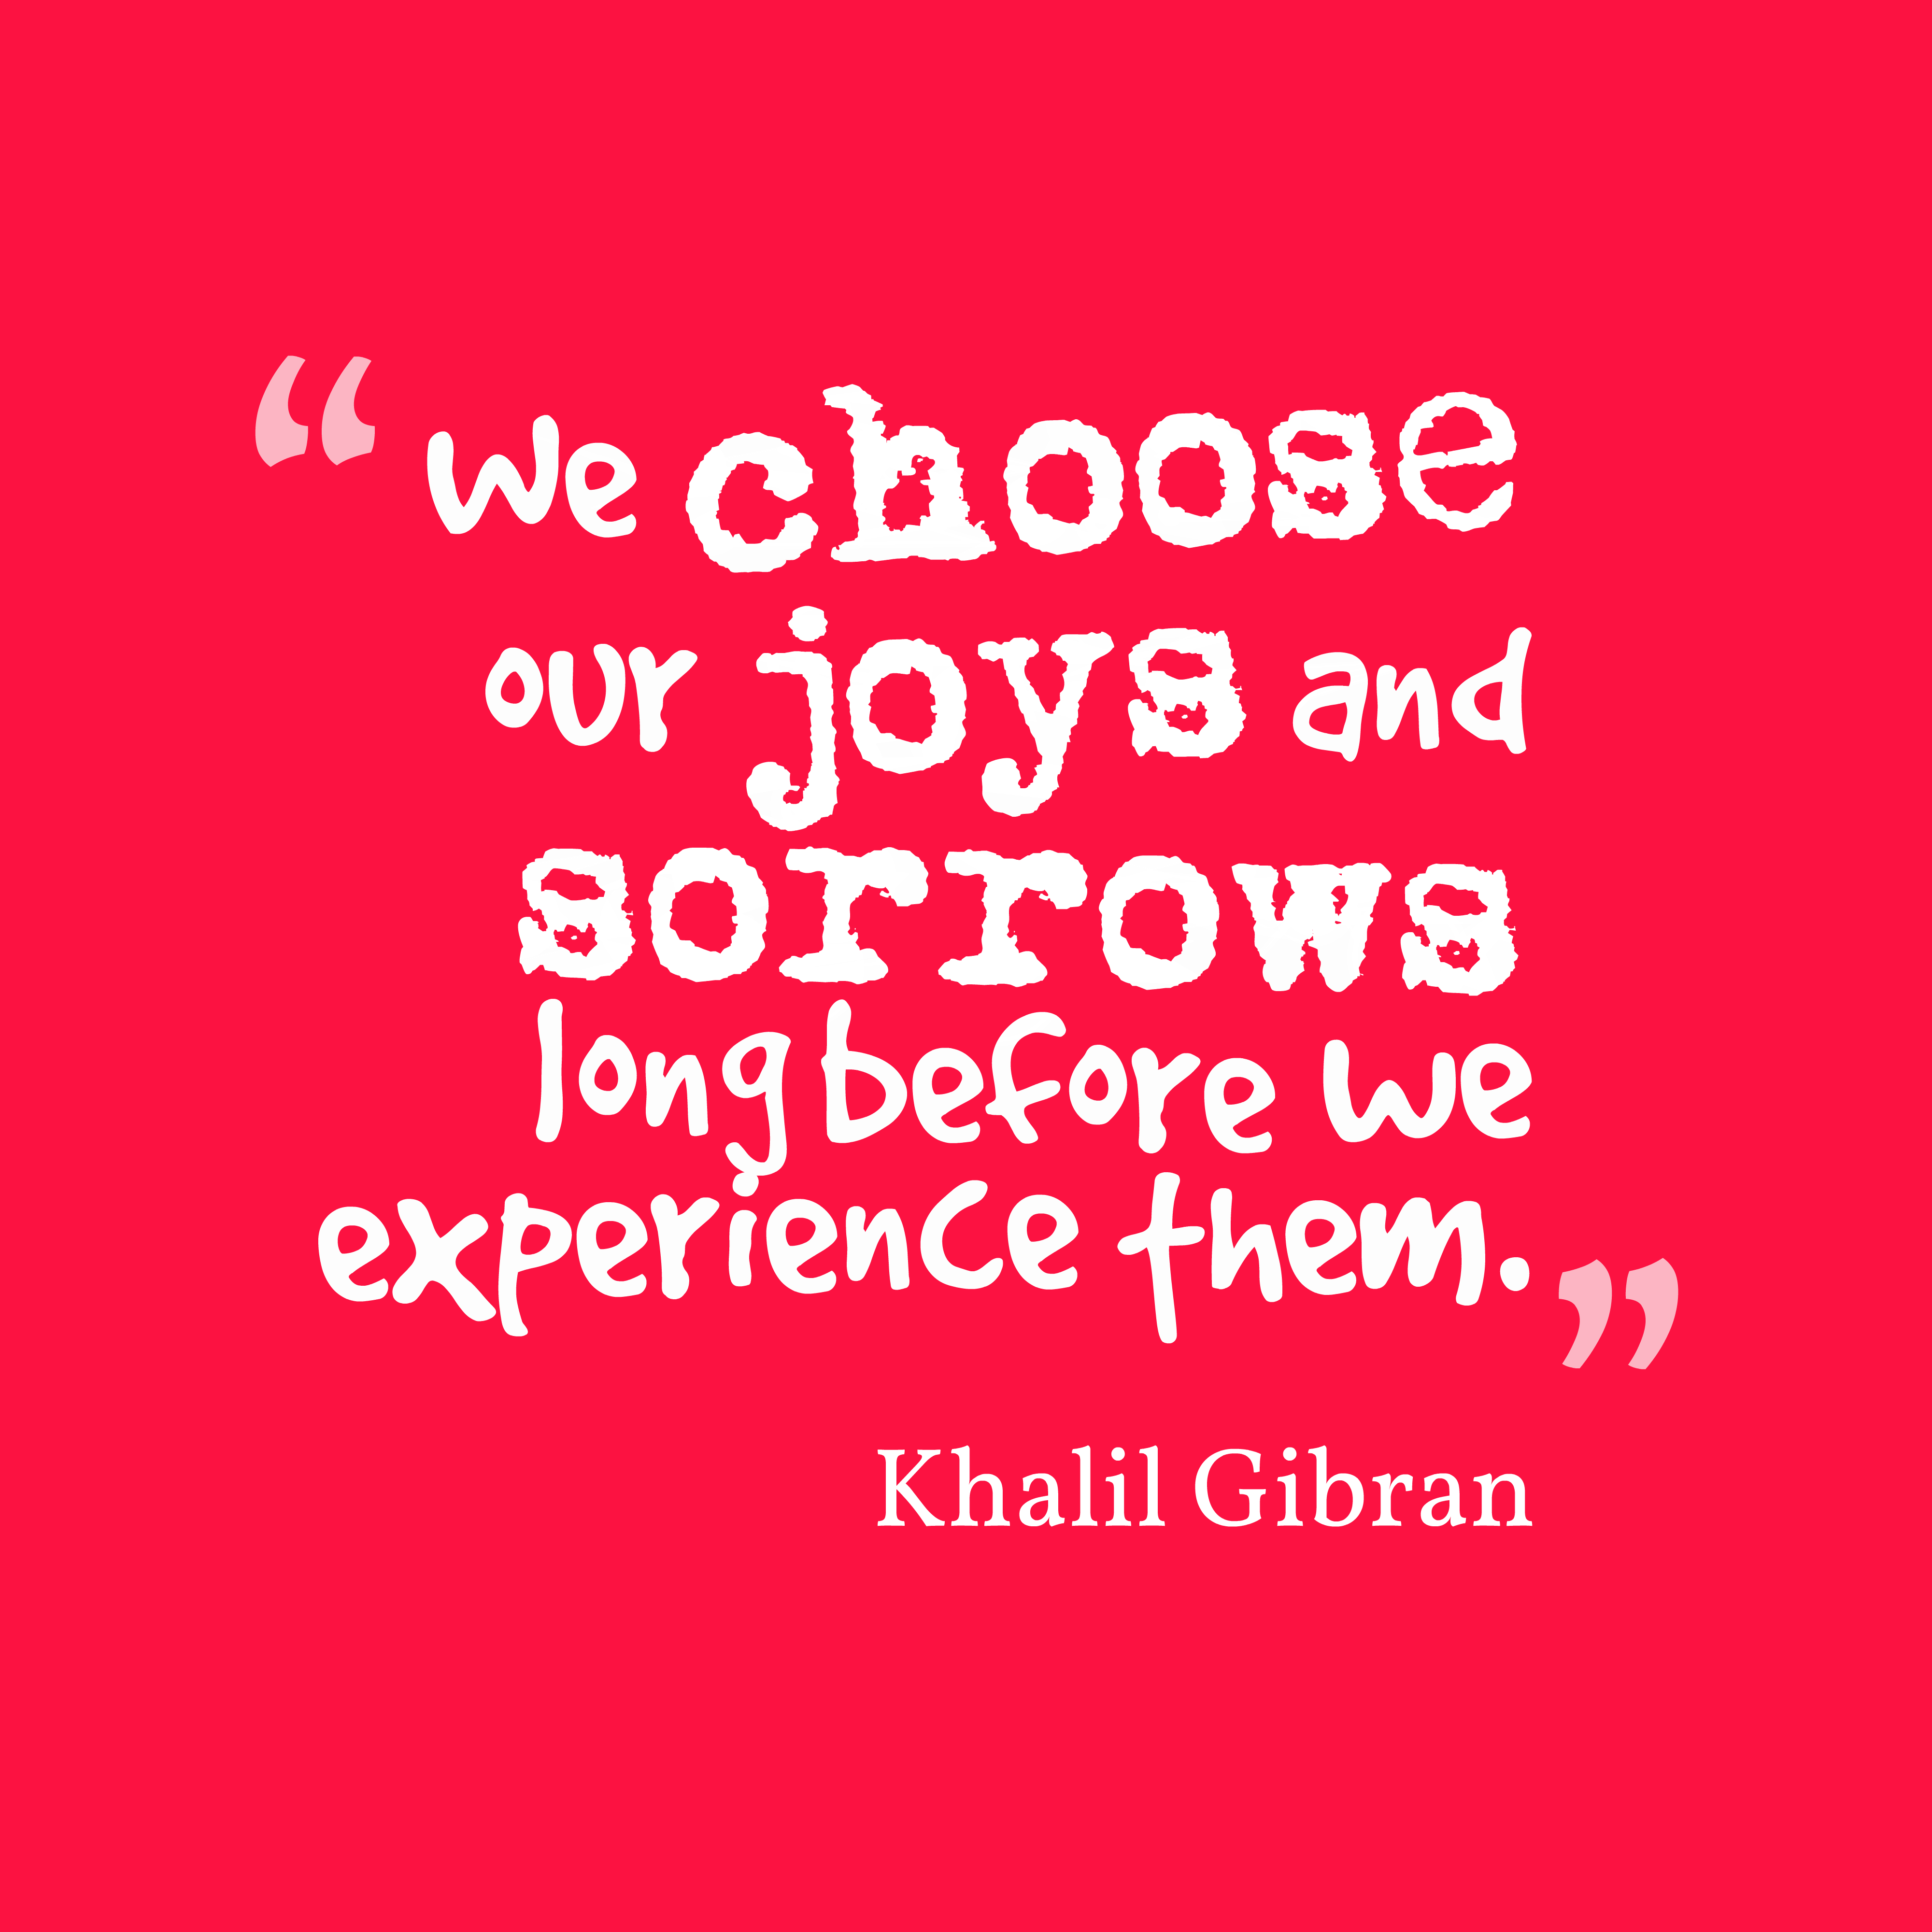 ... our joys and sorrows long before we experience them. Kahlil Gibran